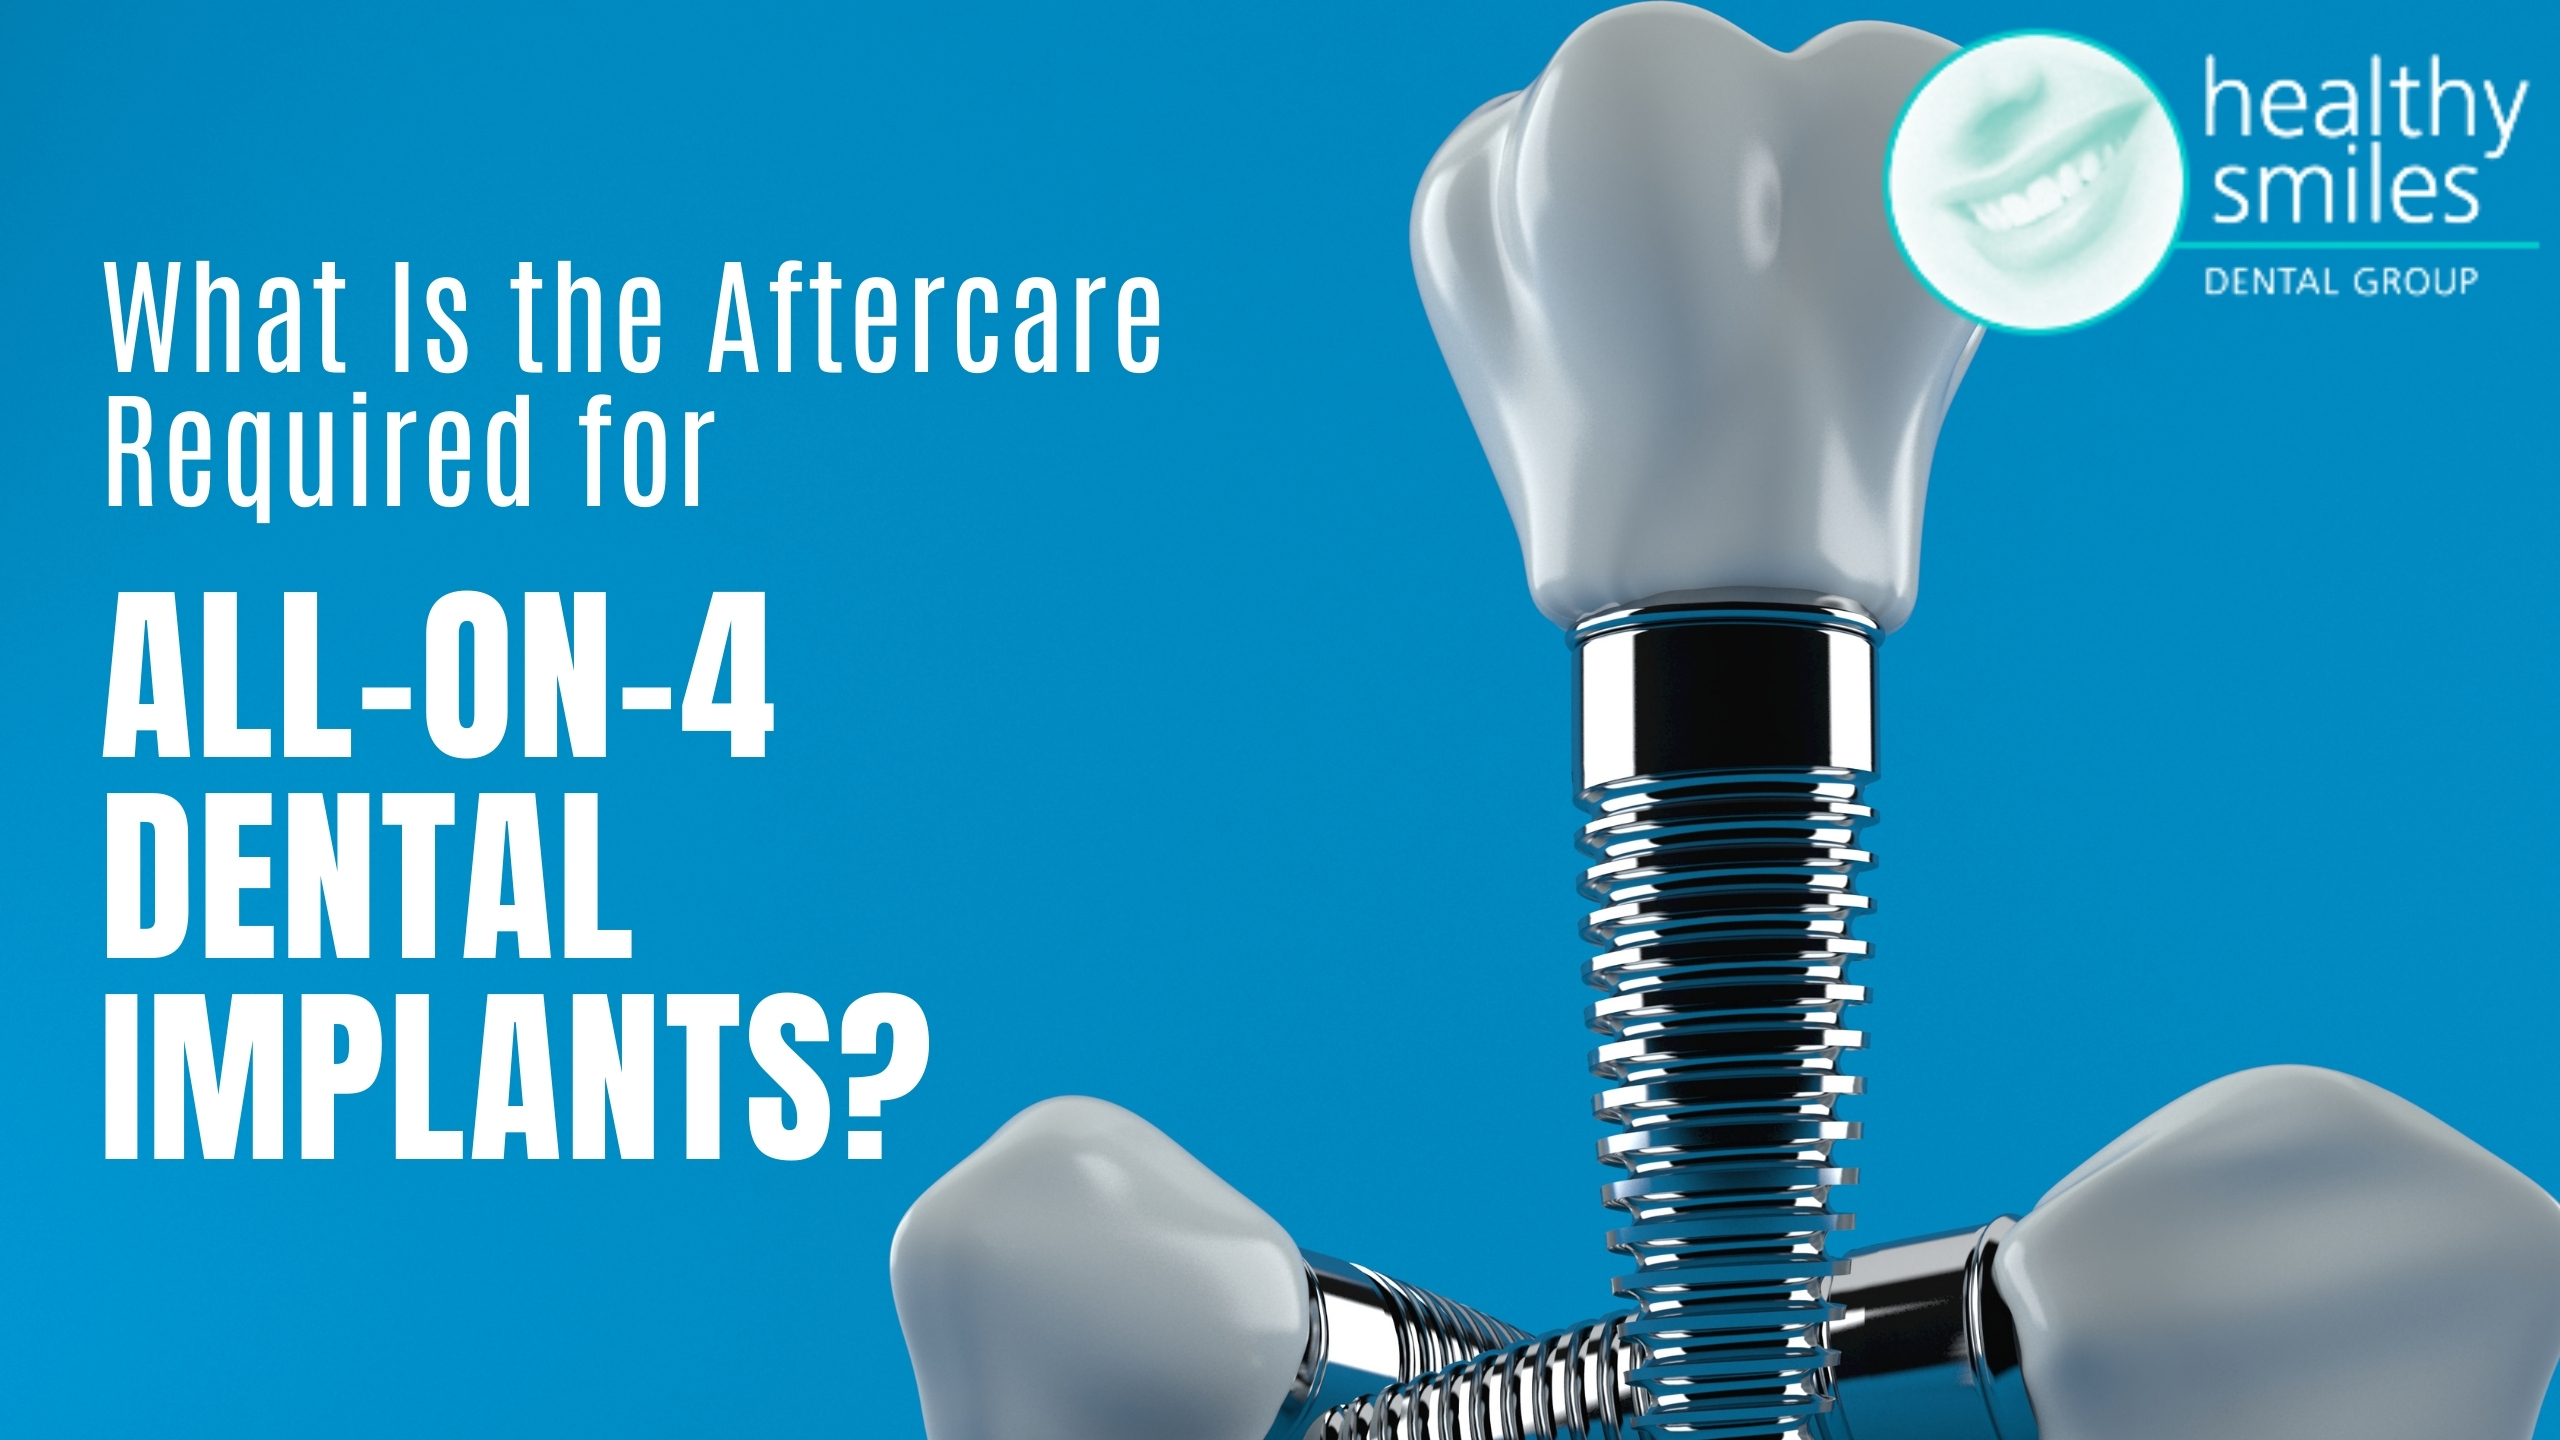 What is the Aftercare Required for All-on-4 Dental Implants?